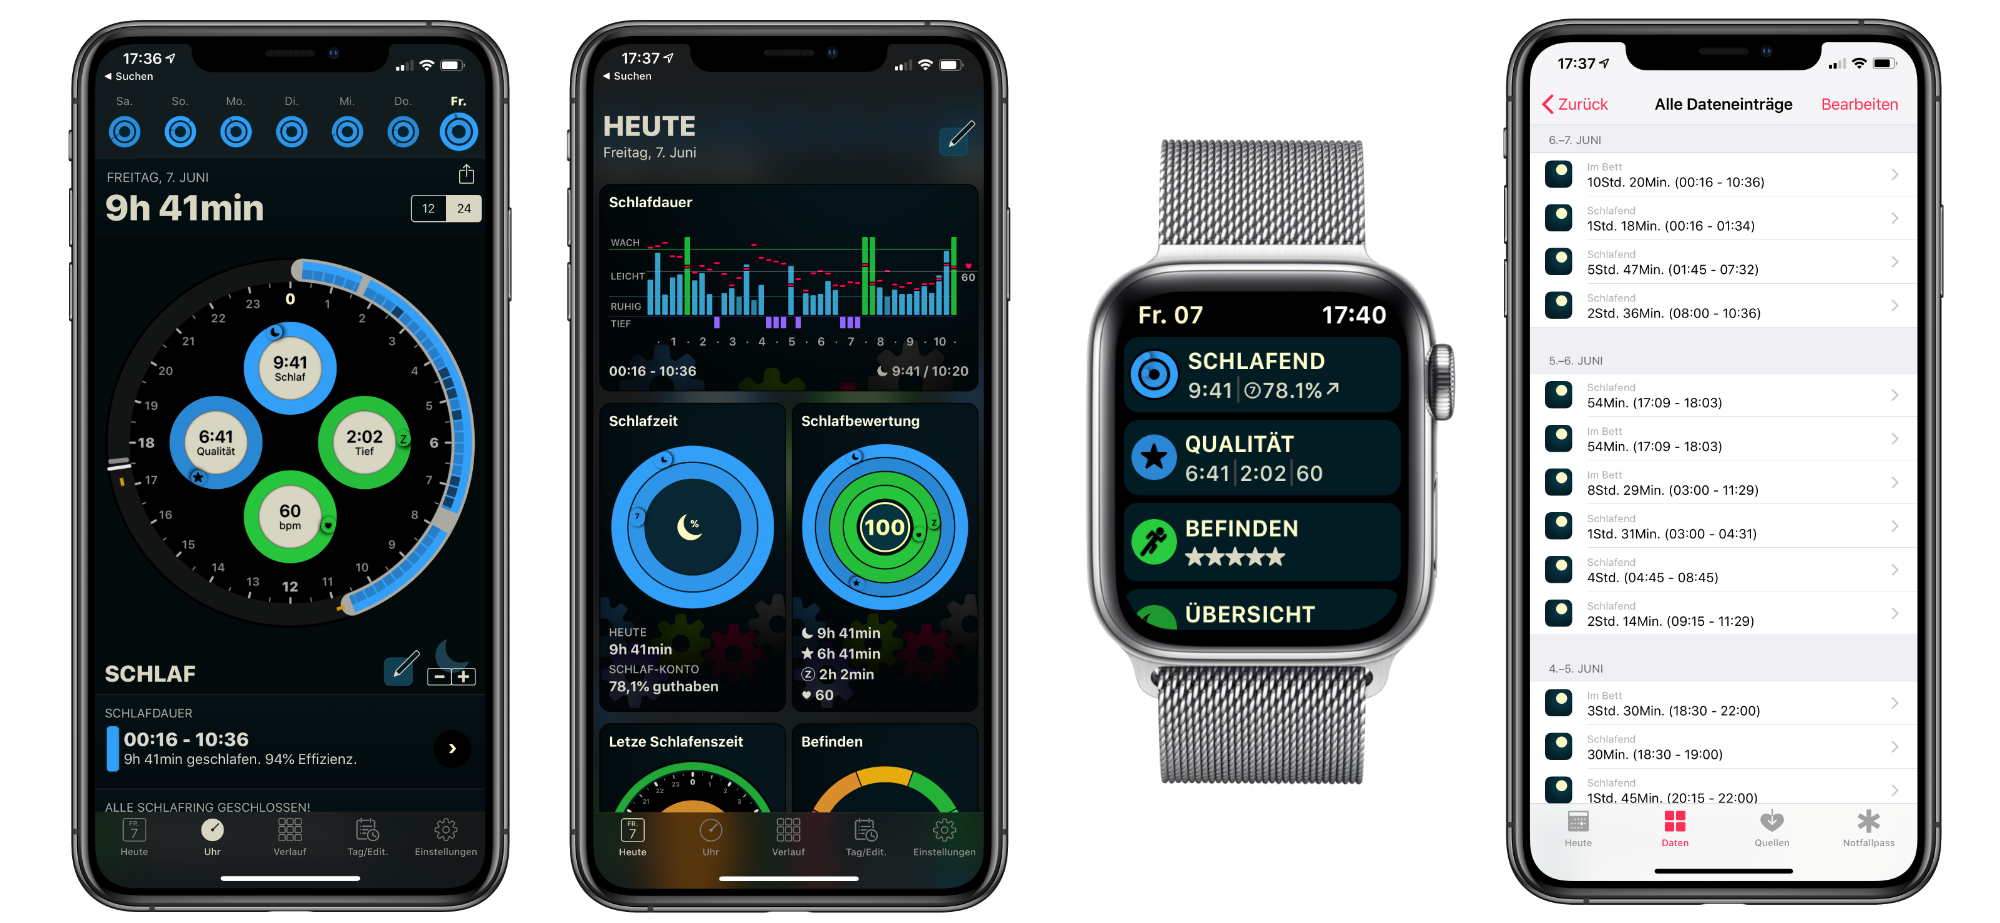 Autosleep_App_iOS_watchOS_Apple_Watch_Tracking2 AutoSleep - Schlafzyklen mit der Apple Watch aufzeichnen